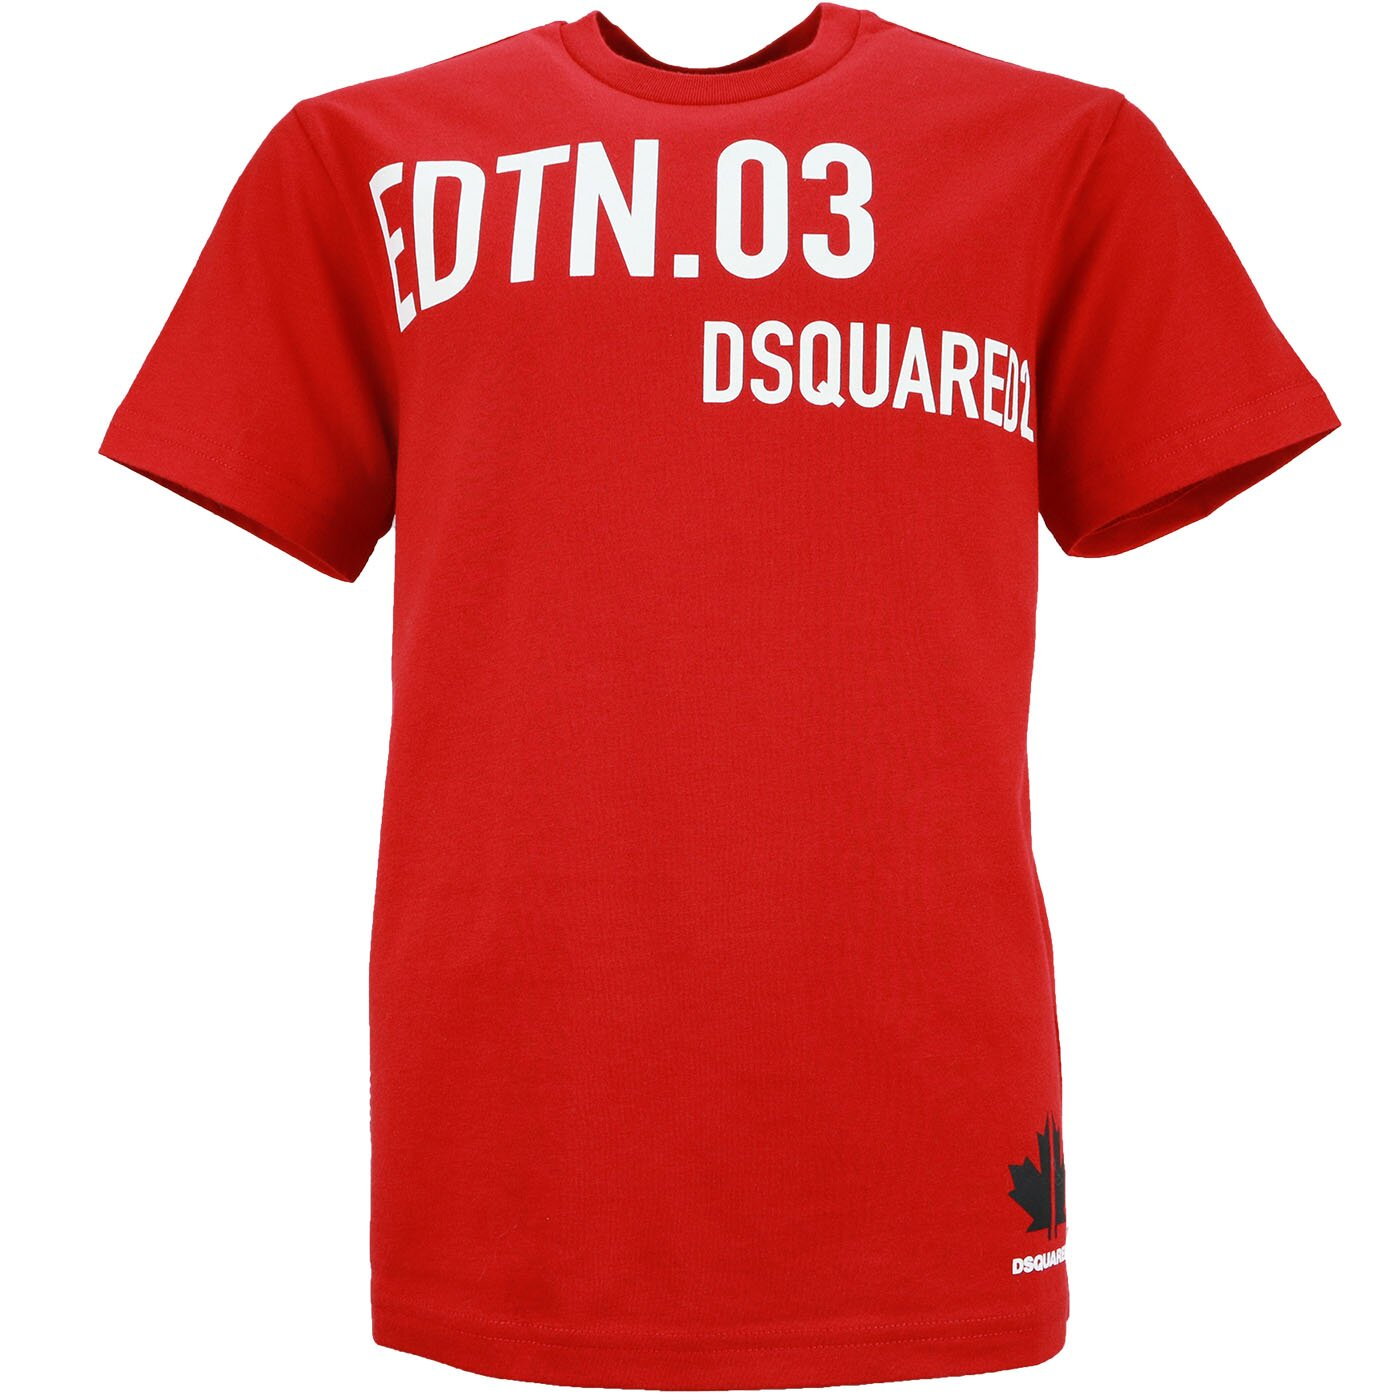 Dsquared2 Shirt Sport Edition DQ0030 Relax Fit